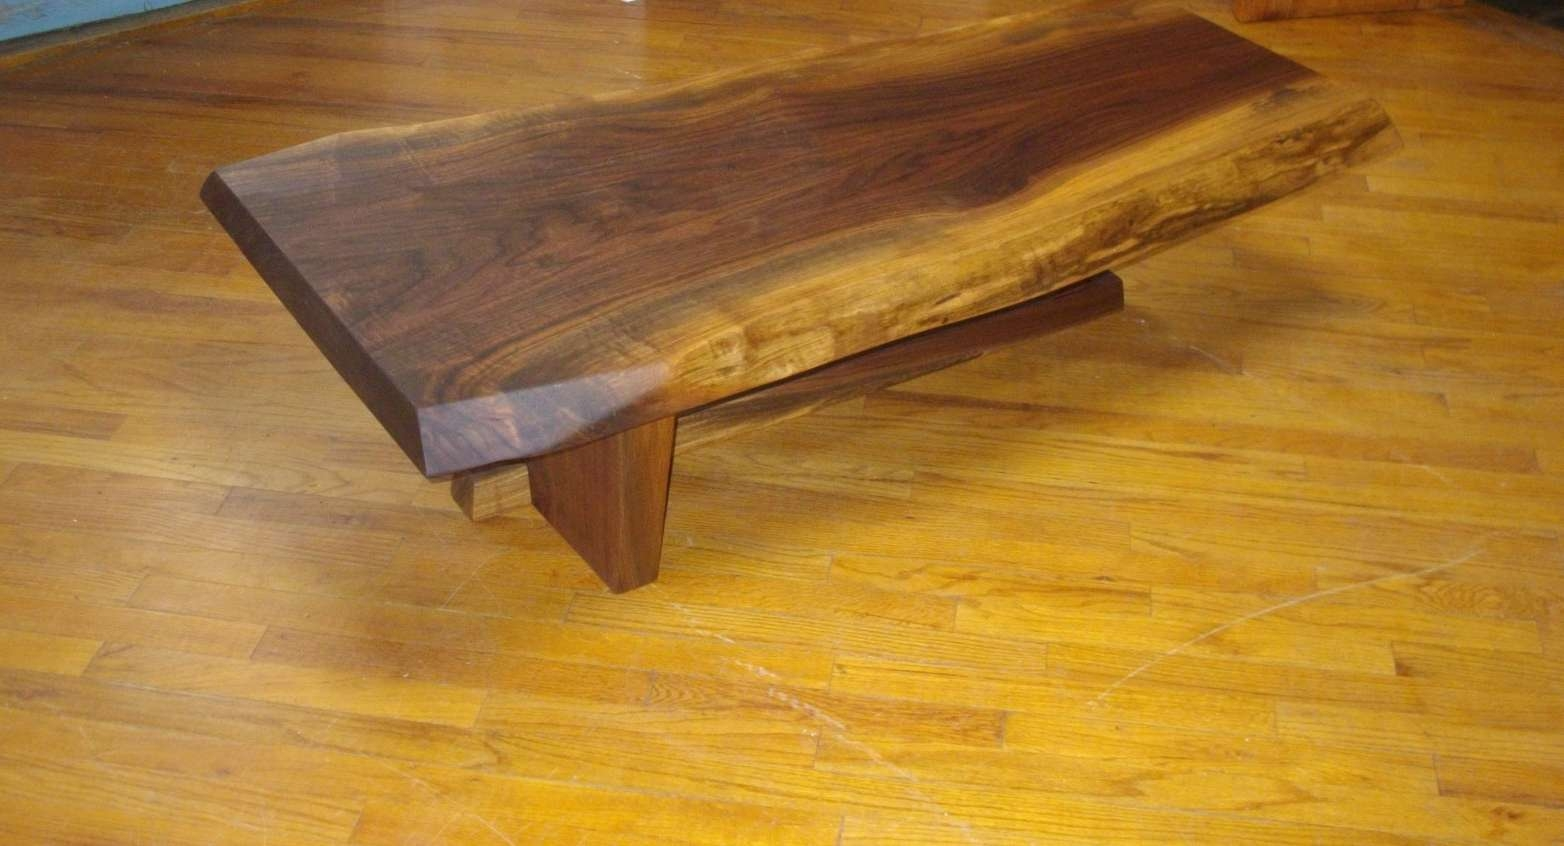 Preferred Low Oak Coffee Tables With Regard To Coffee Tables : Superb Large Low Oak Coffee Table Ravishing Large (View 11 of 20)